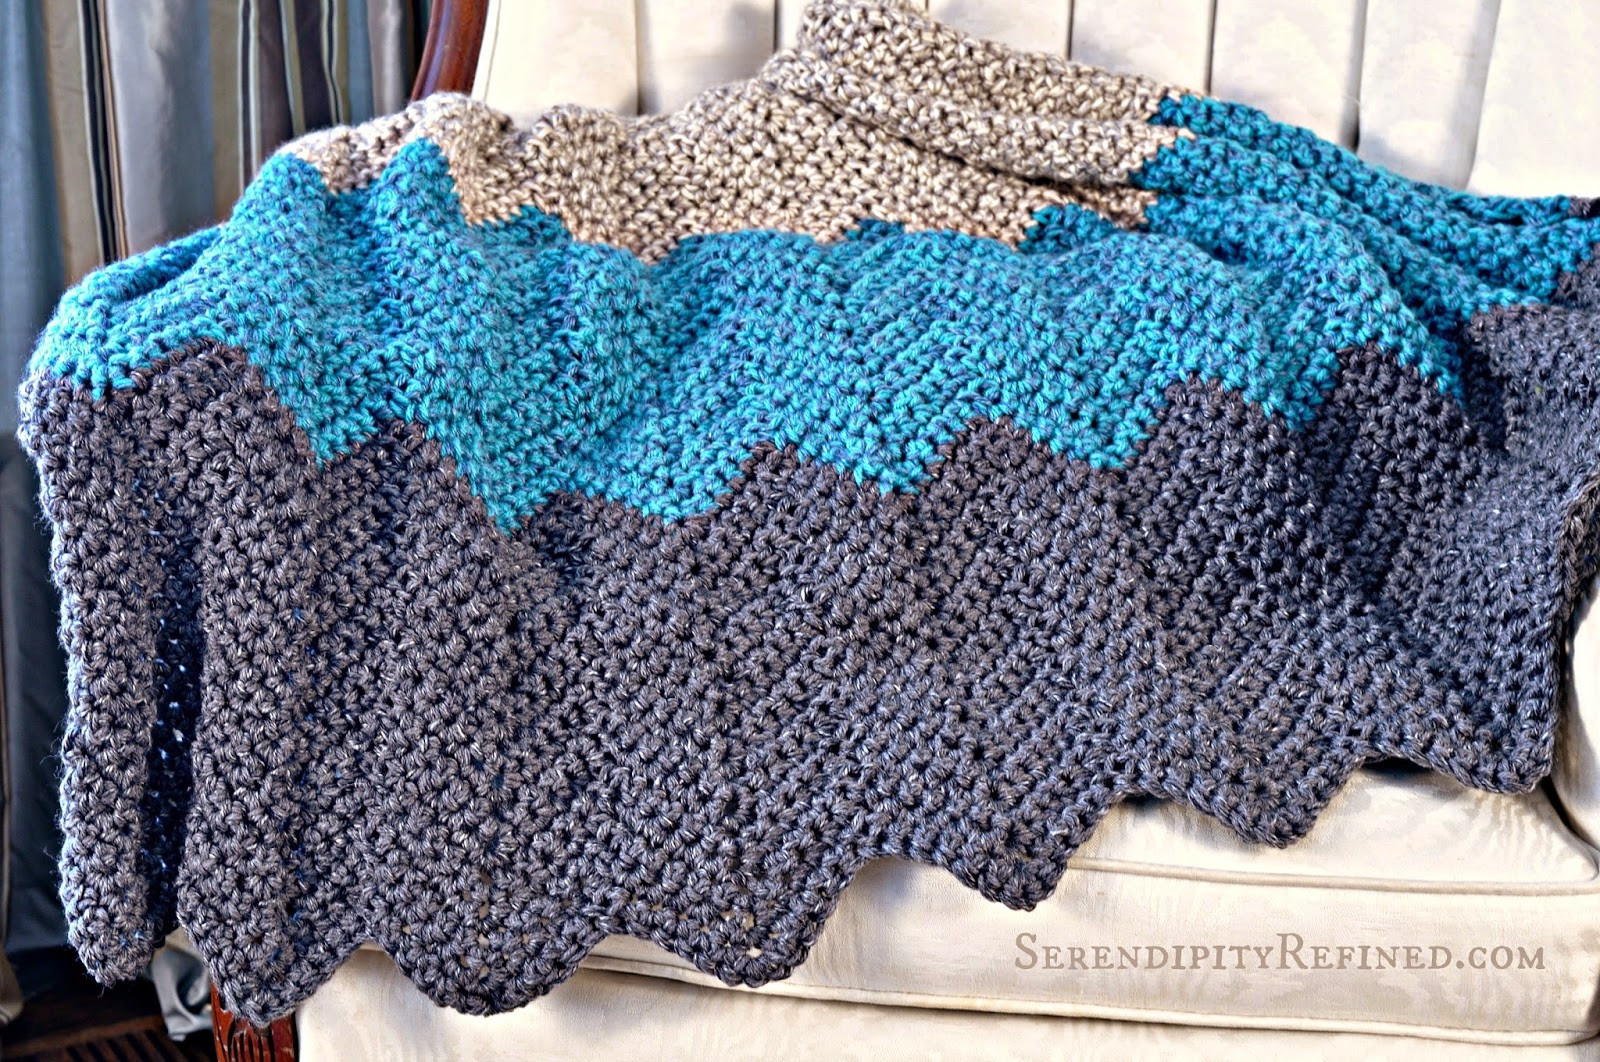 Crochet Throw Blanket Awesome Easy Crochet Throw Patterns for Beginners Of Great 44 Pics Crochet Throw Blanket